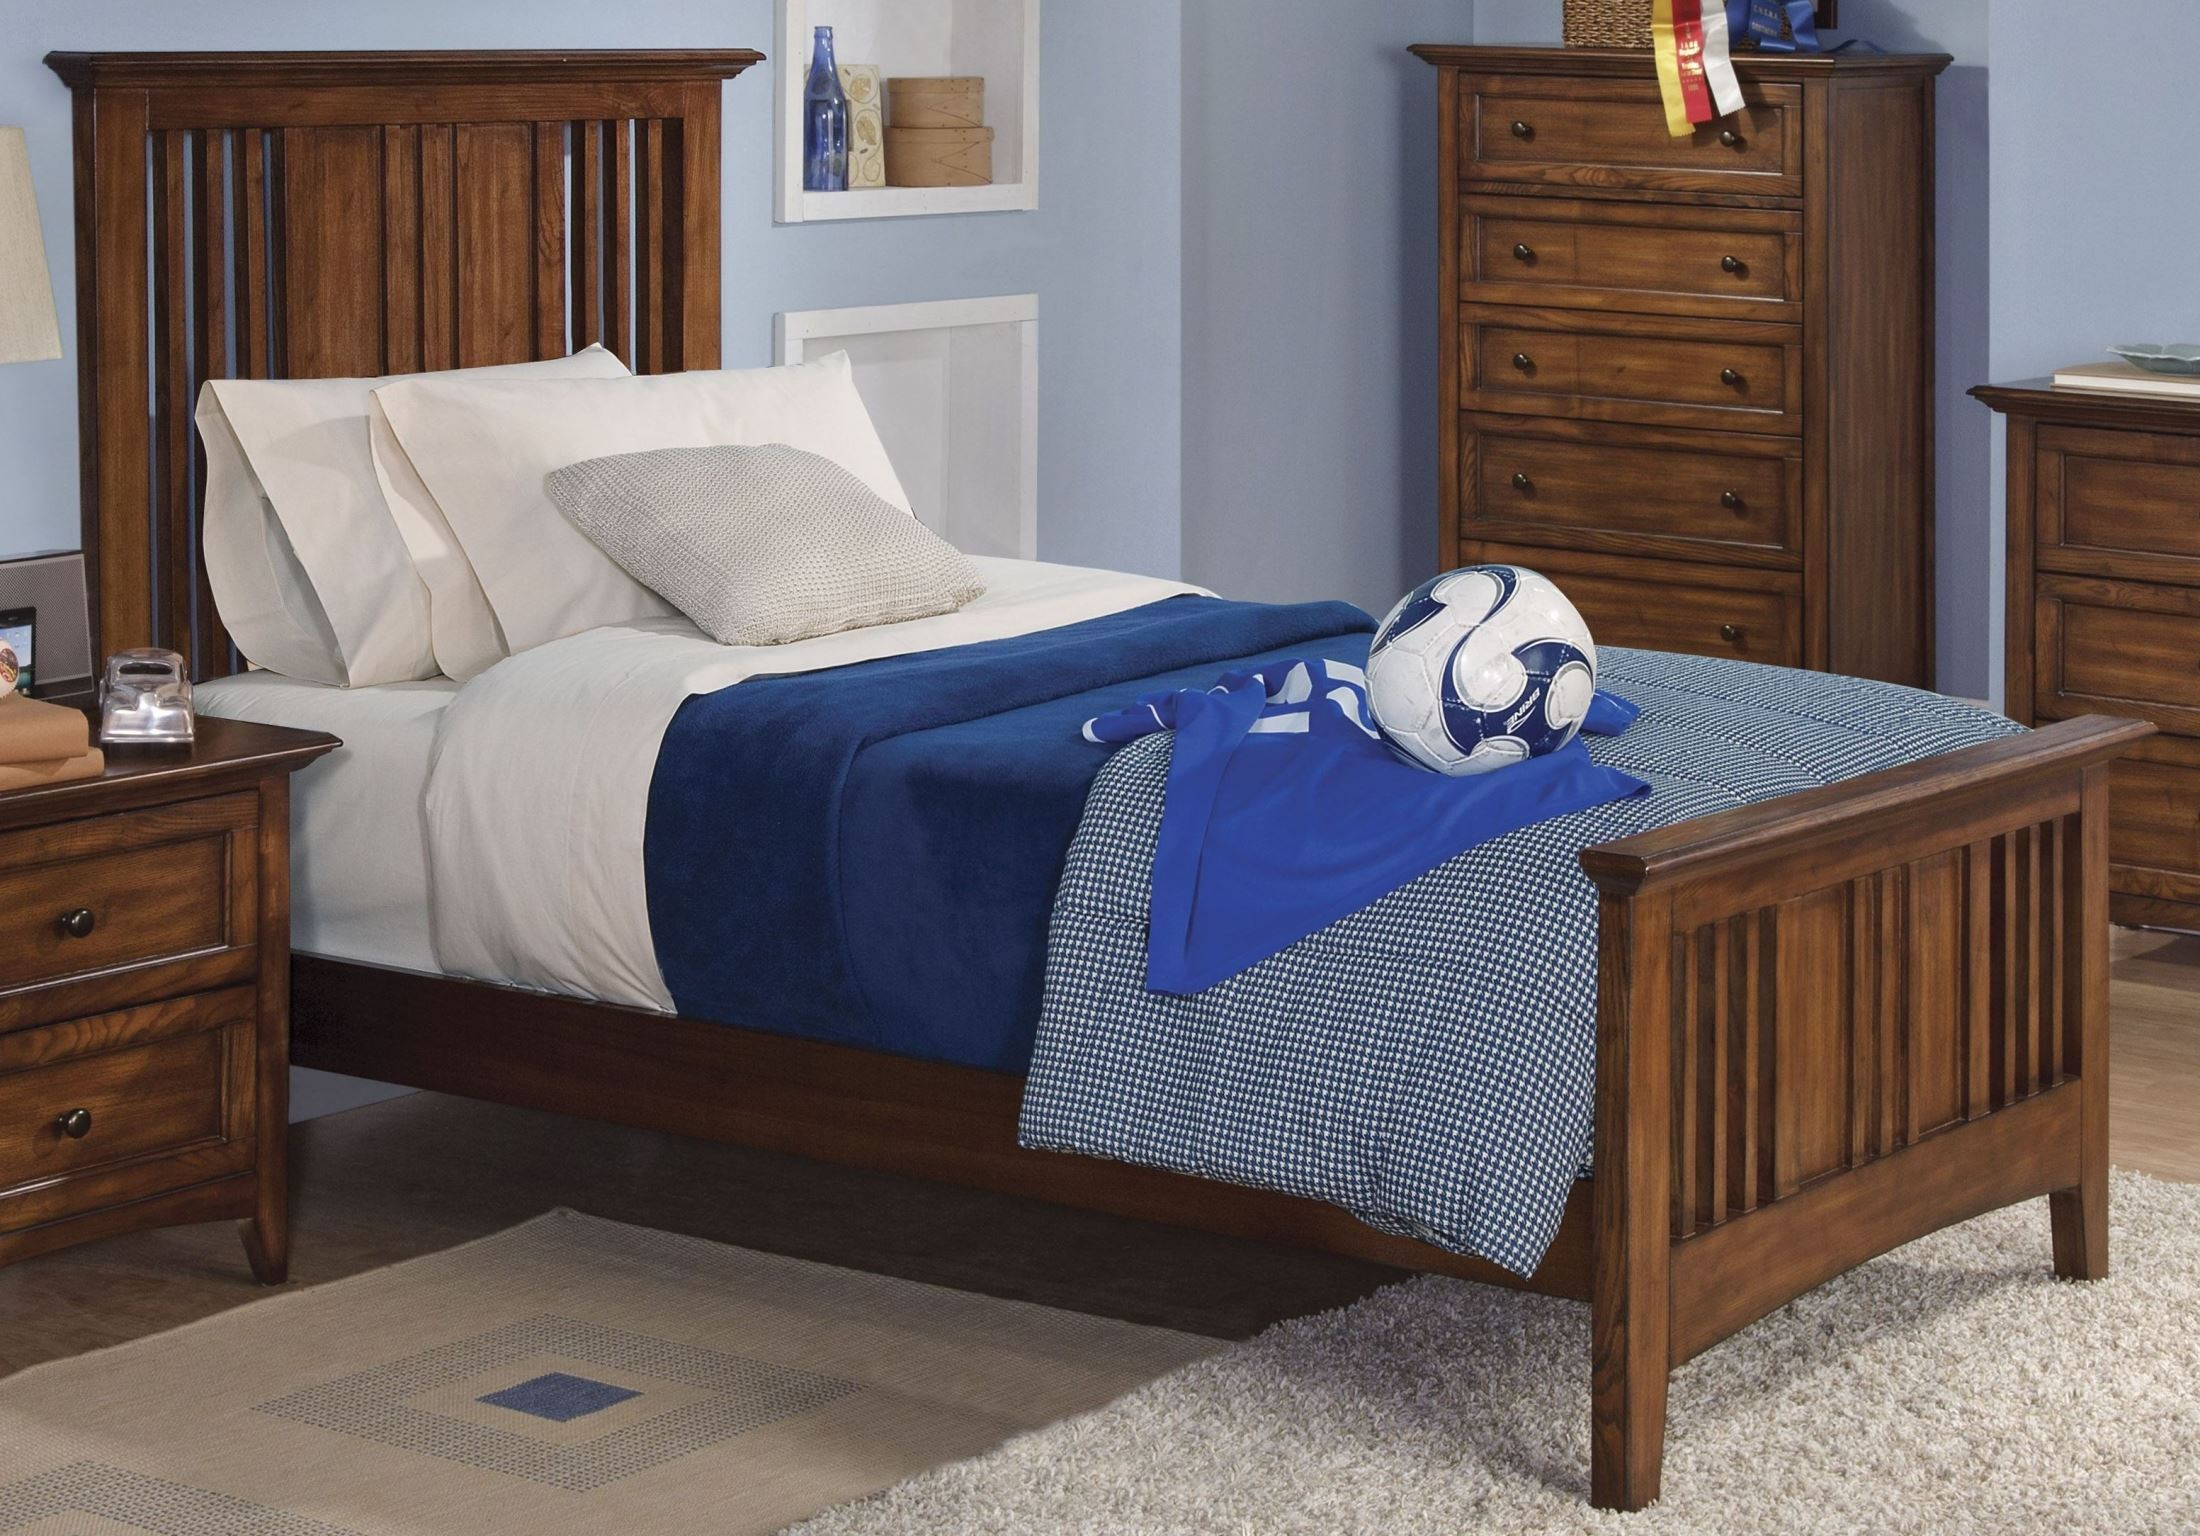 Logan Bedroom Furniture 28 Images Best Logan Bedroom Furniture Pictures Home Design Ideas